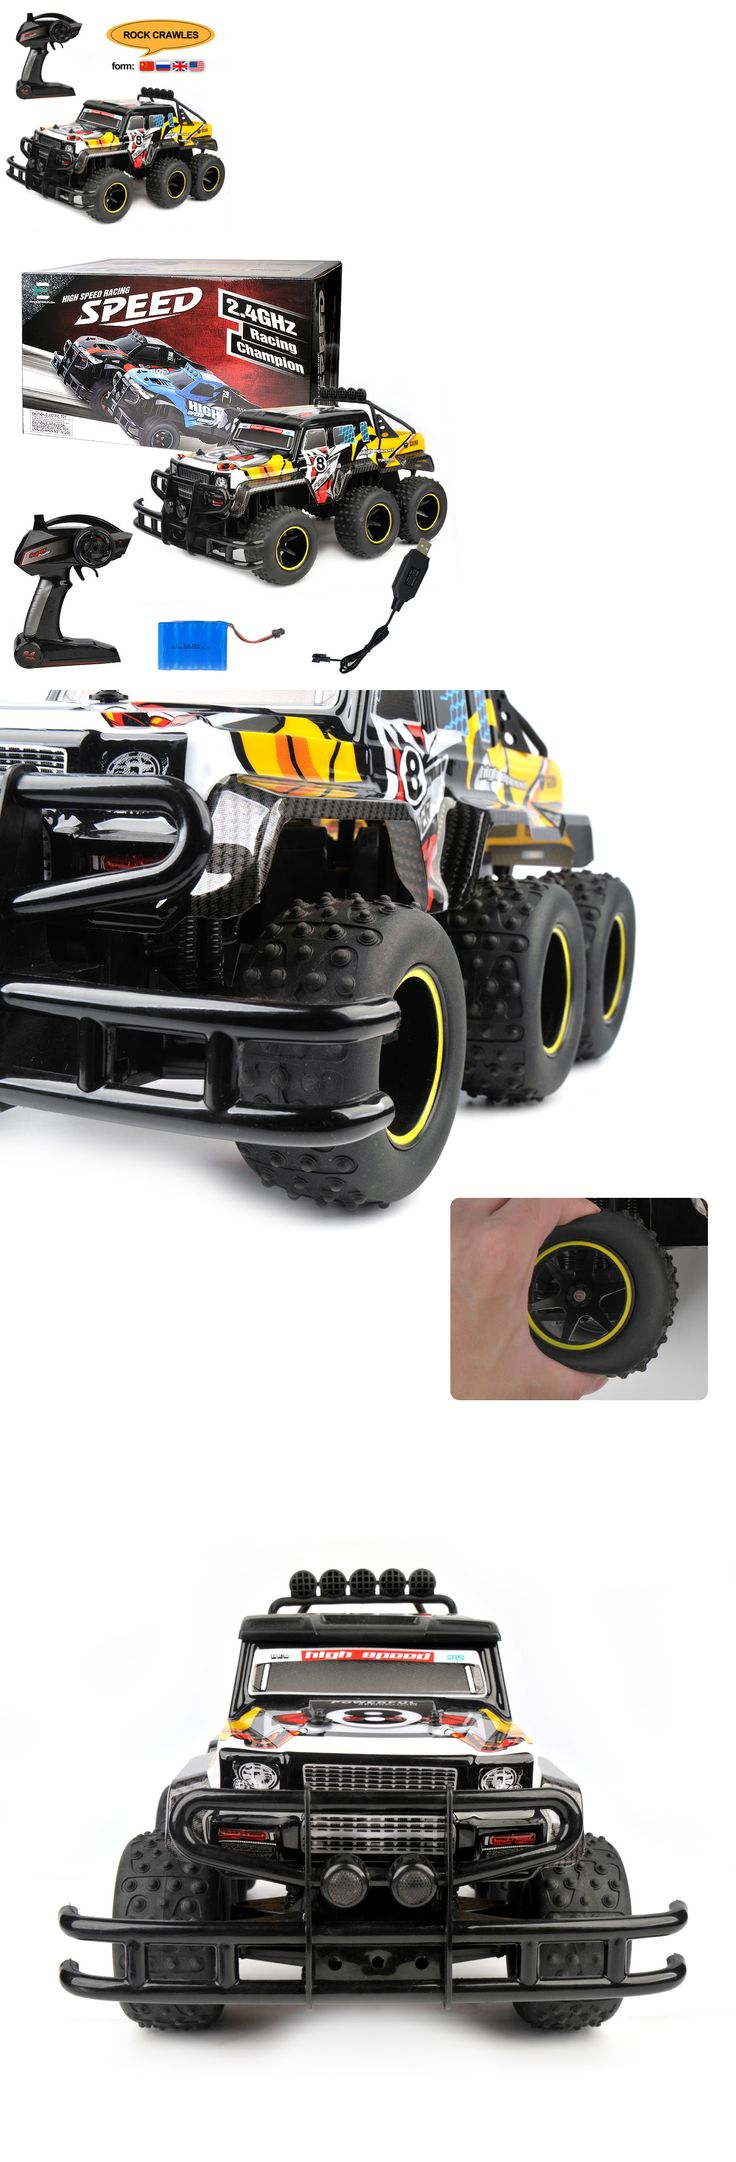 Cars trucks and motorcycles 182183 1 10 climbing rc car off road monster